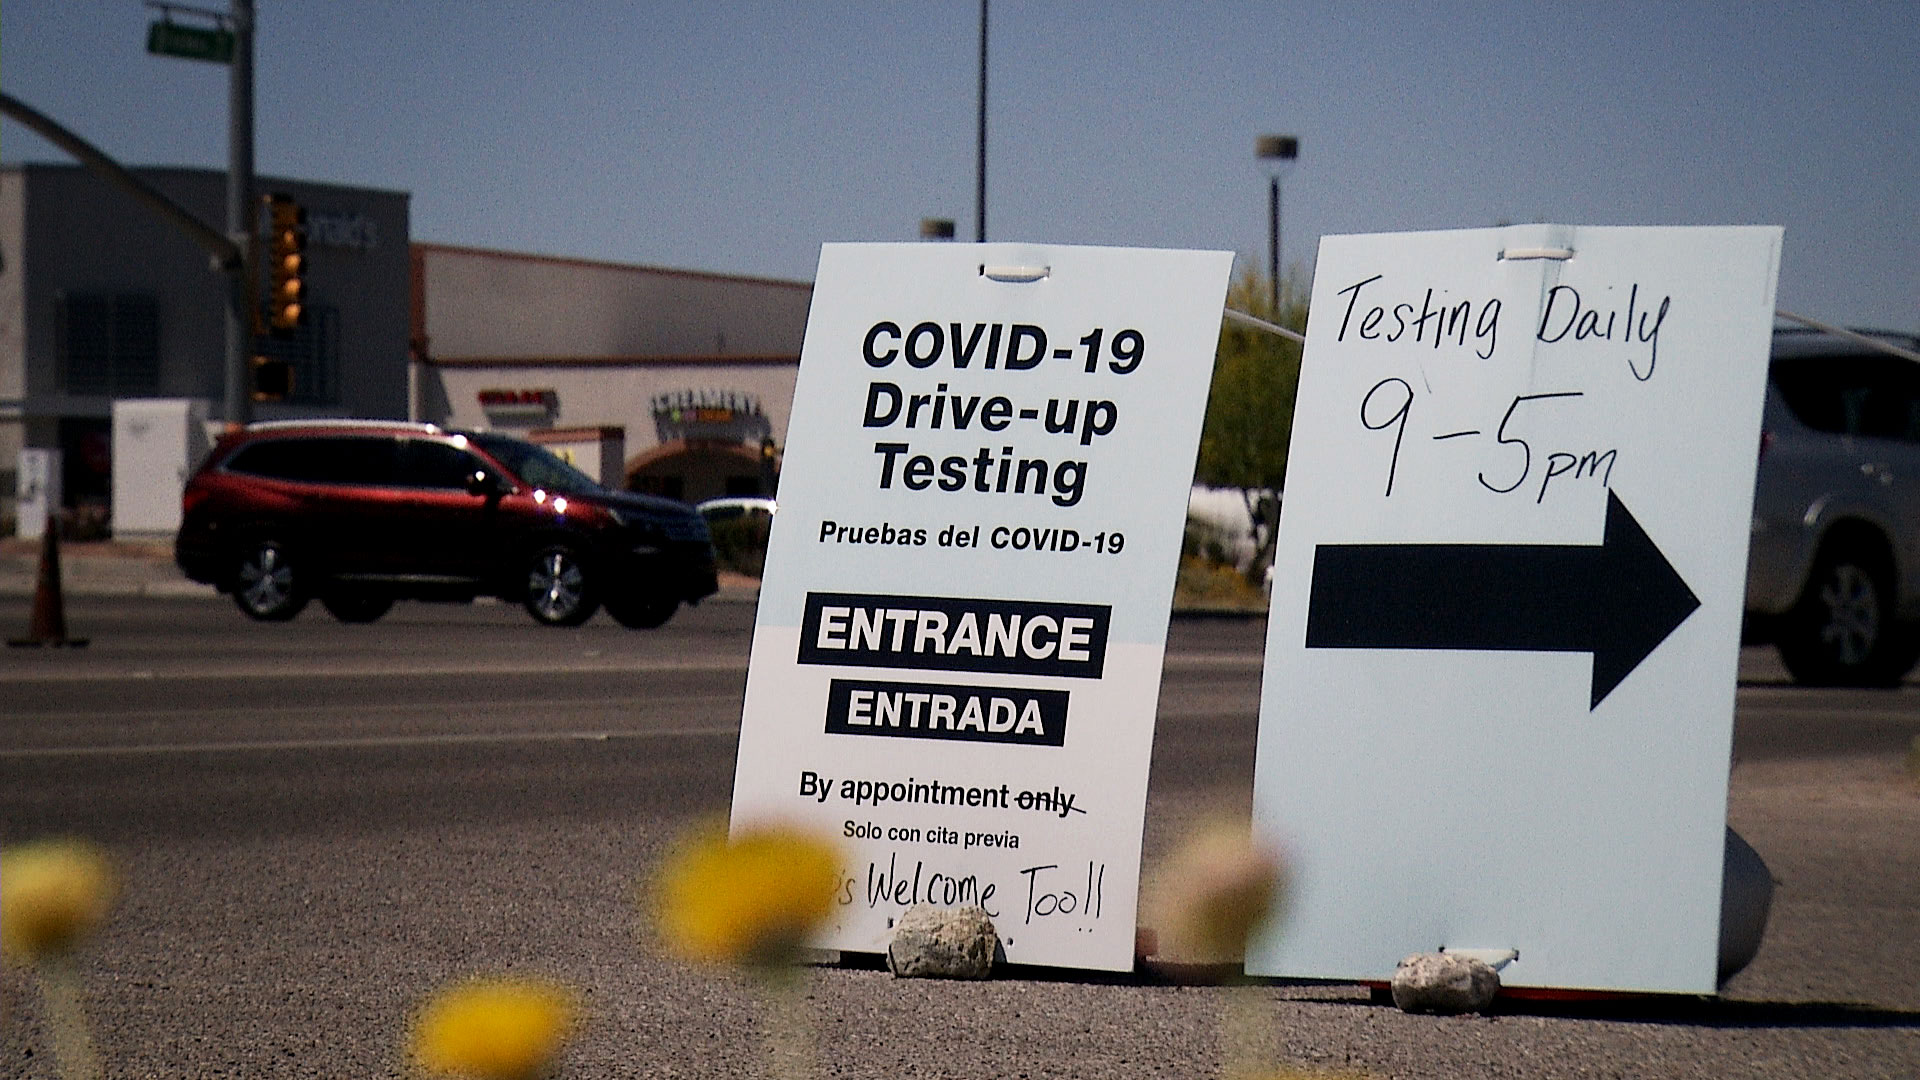 Signs advertise a drive-thru COVID-19 testing site outside of Walgreens in Tucson on April 21, 2020.